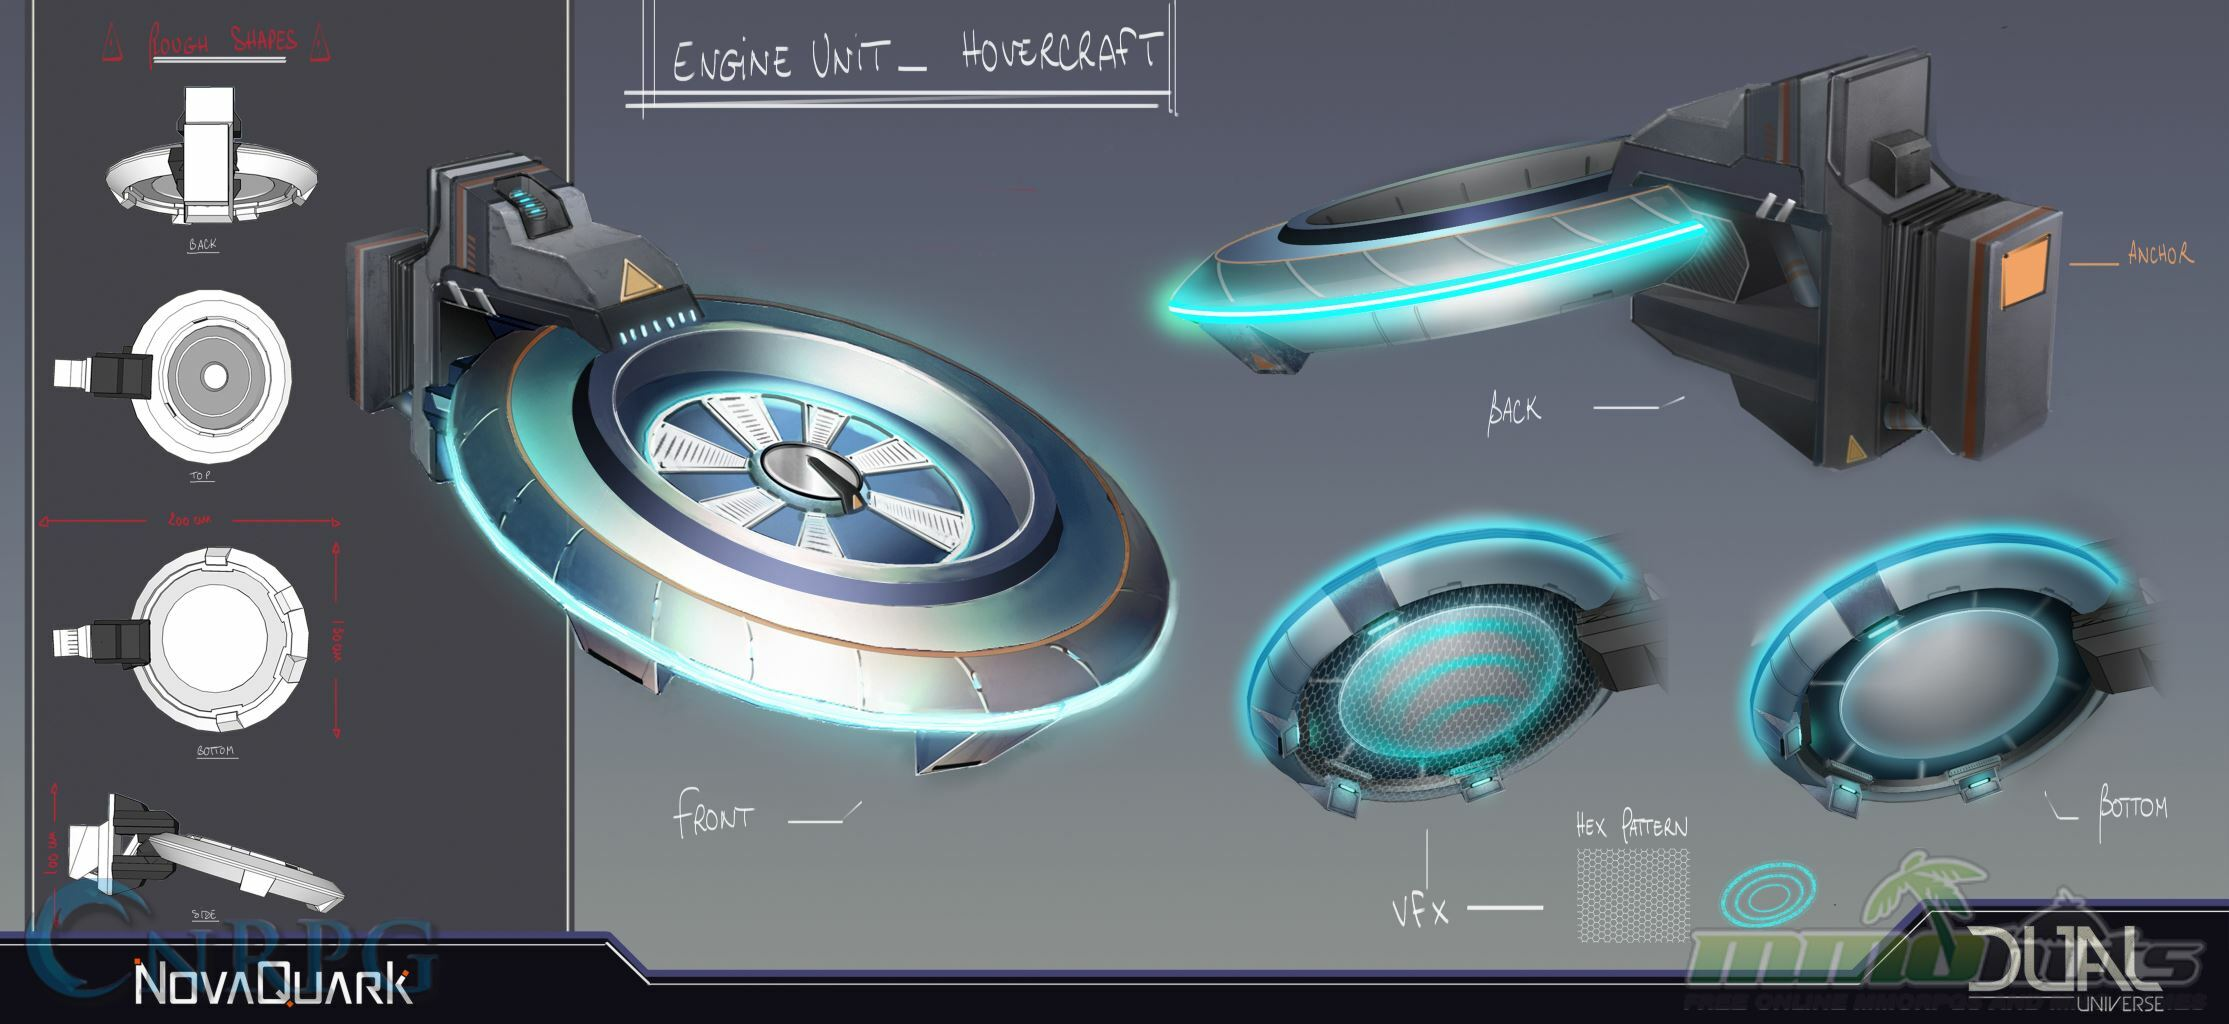 20_engineunit_hovercraft